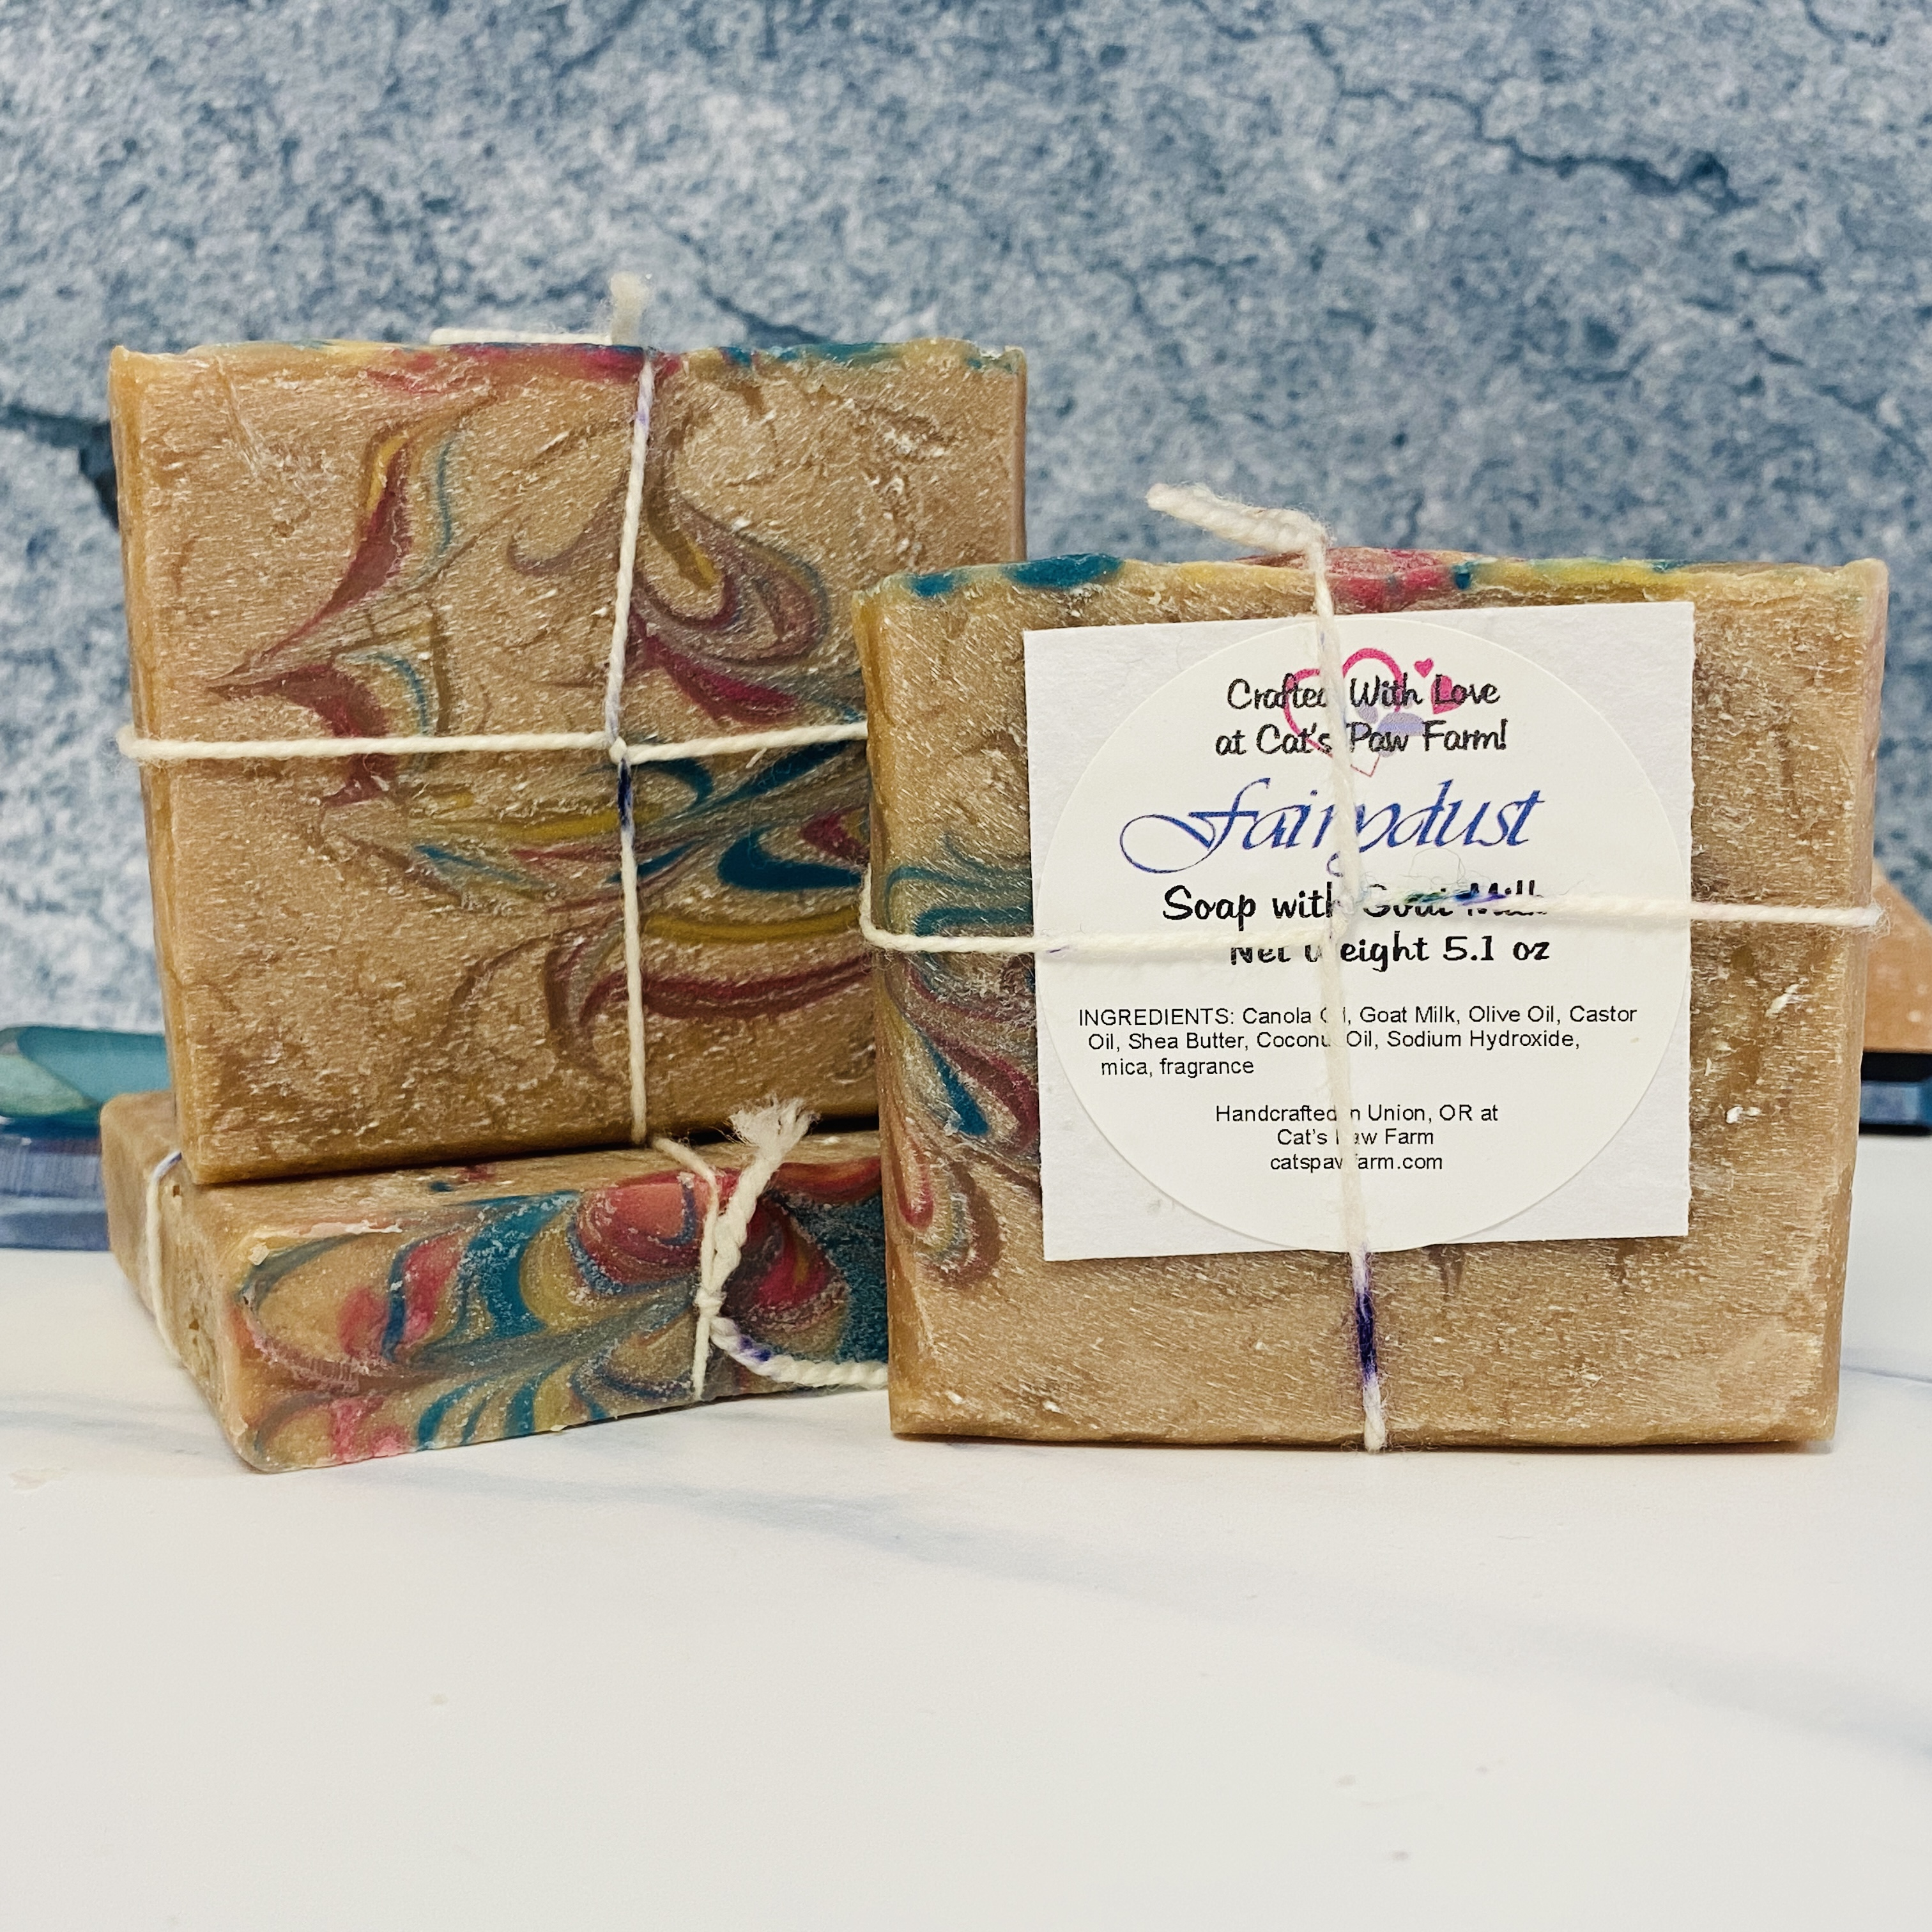 Fairydust Scented Soap with Goat Milk